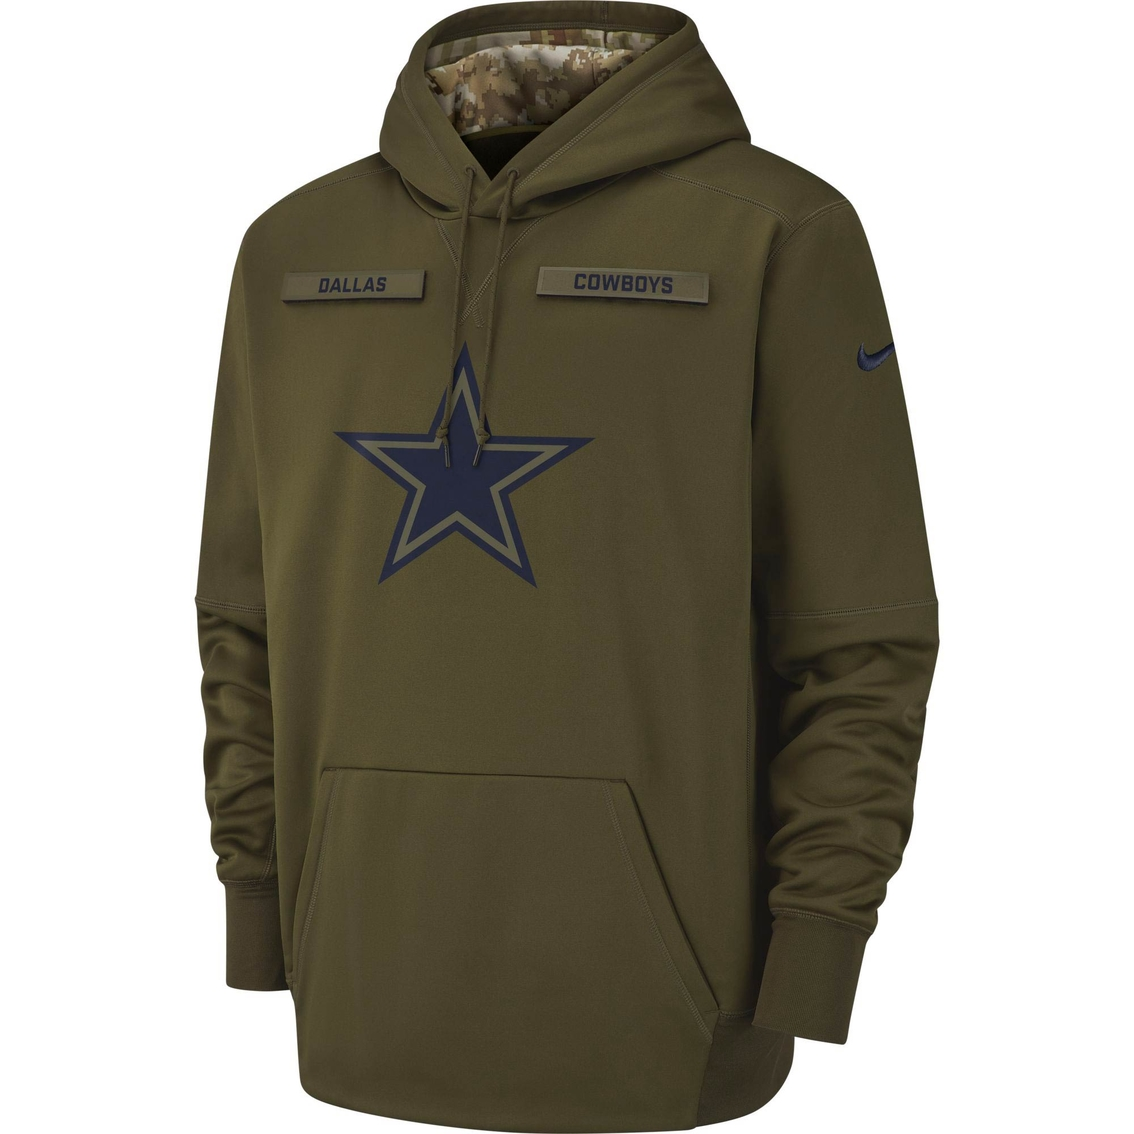 reputable site c2007 56b6a Nike Salute To Service Nfl Dallas Cowboys Hoodie | Hoodies ...